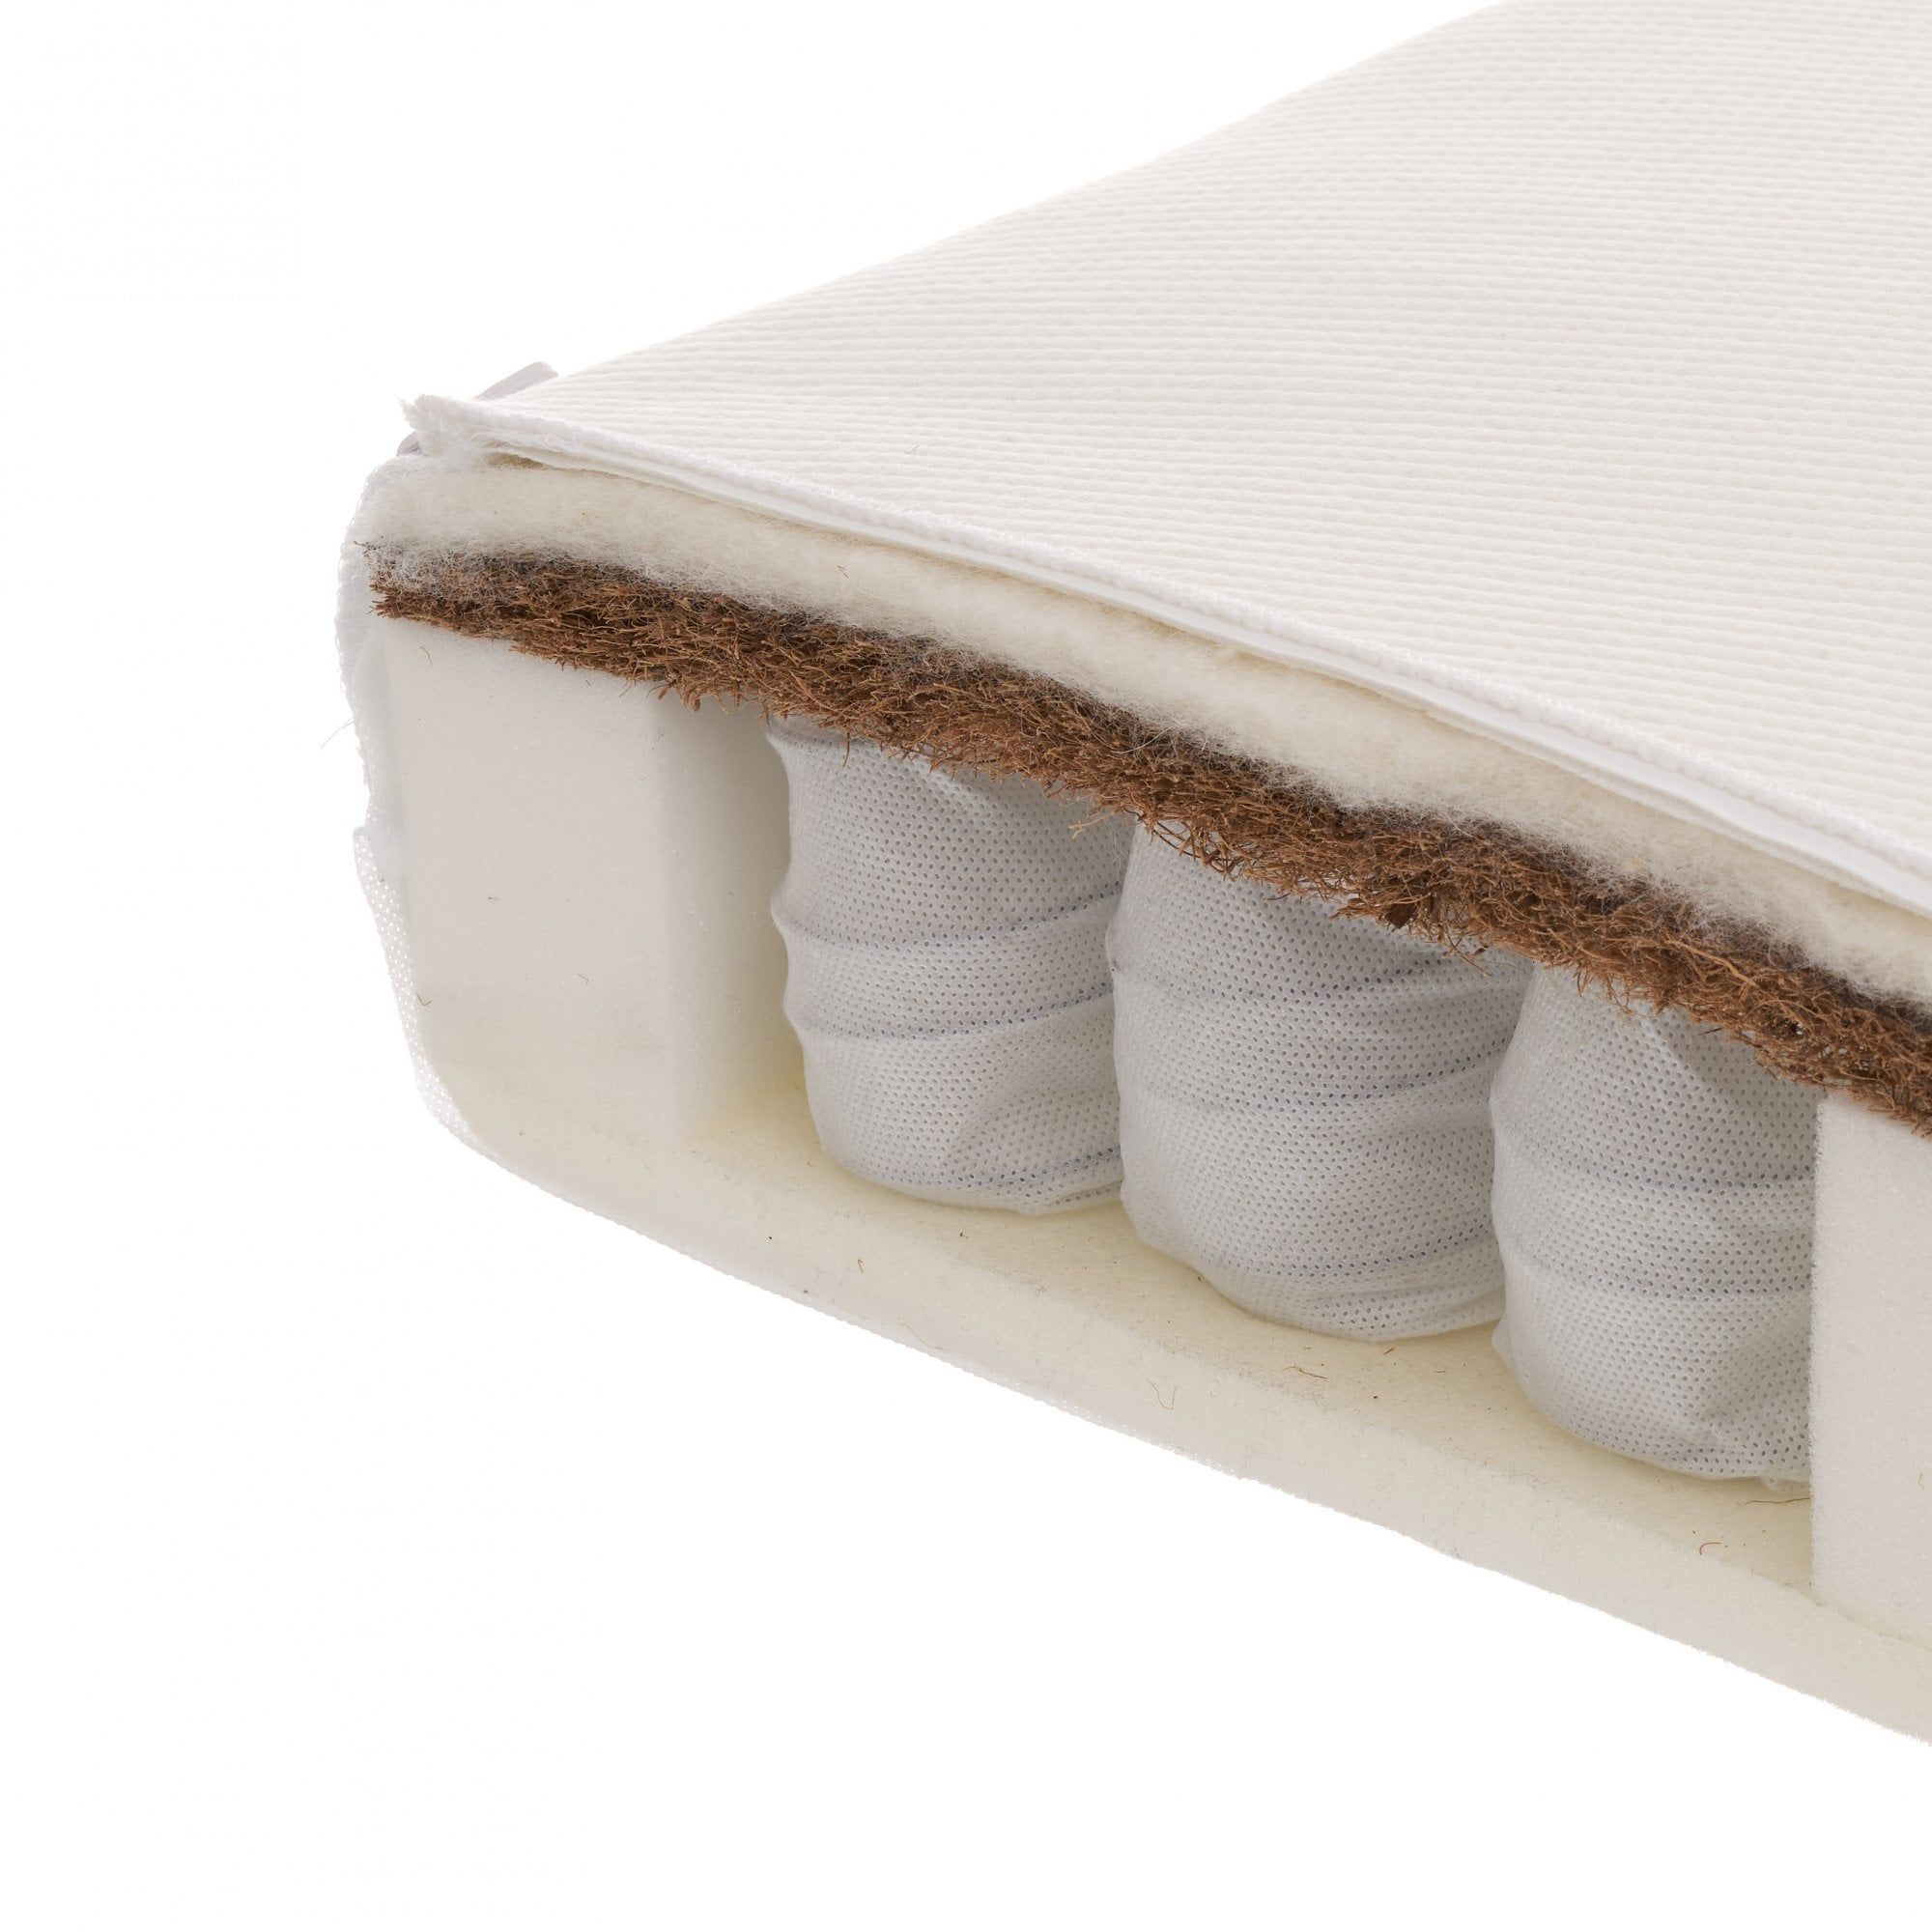 Obaby 140 x 70cm Pocket Sprung Cot Bed Mattress